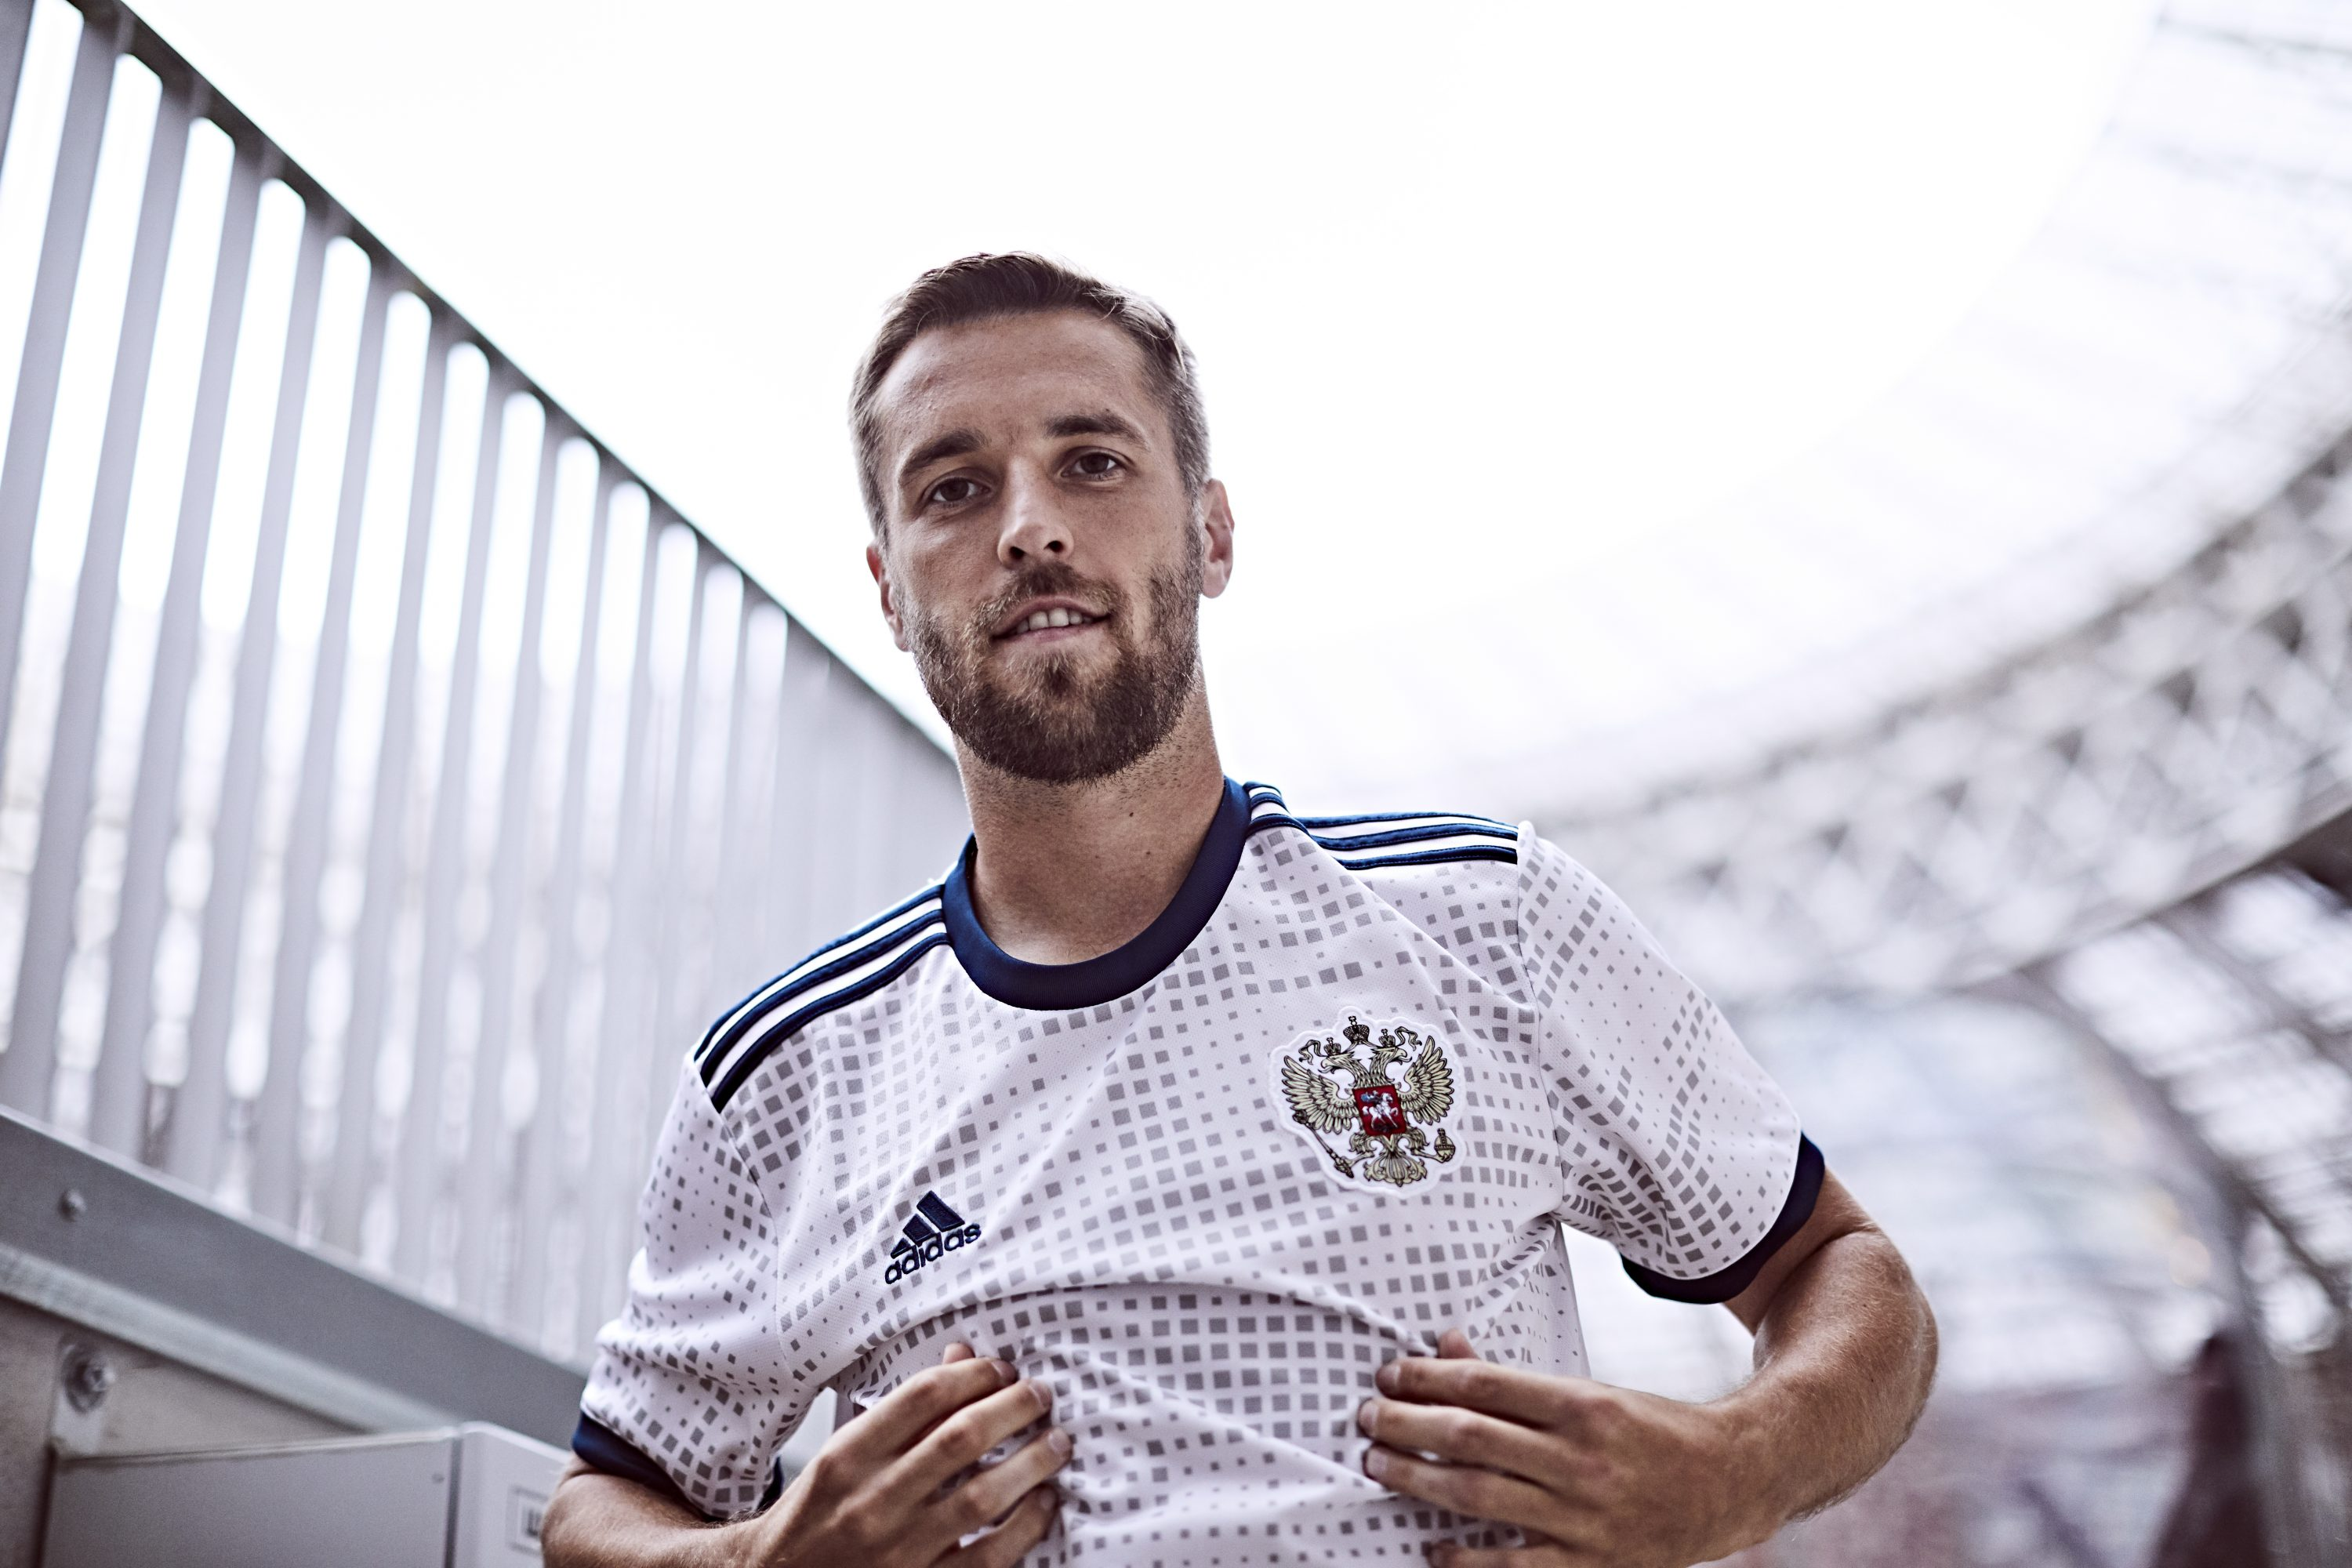 d326d87bb58 Mexico's away shirt, modeled by Javier Hernandez, is one of the more  stripped back kits on offer, featuring the Mexican national colours across  the chest ...